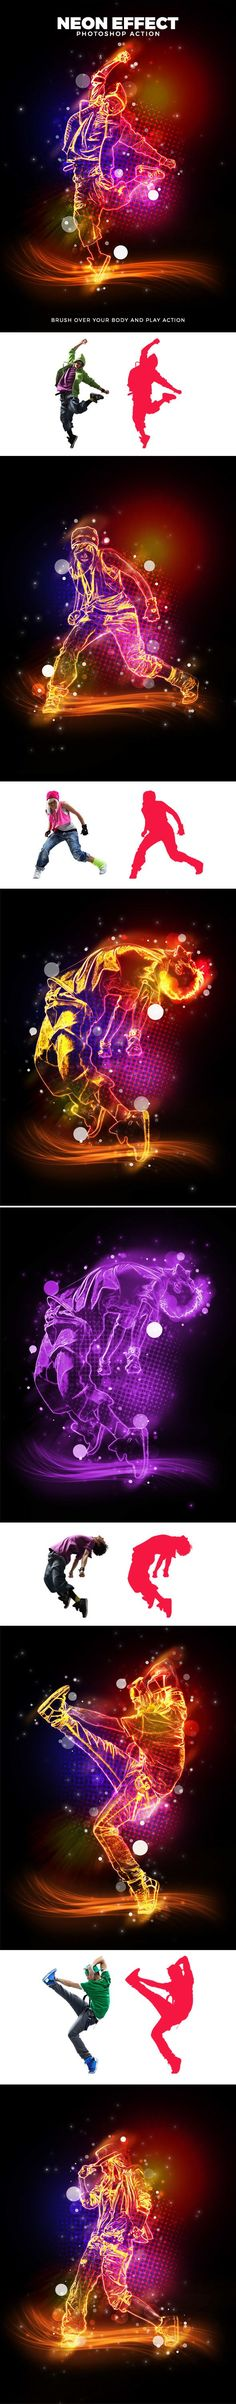 Neon Effect Photoshop Action. Download here: graphicriver.net/...